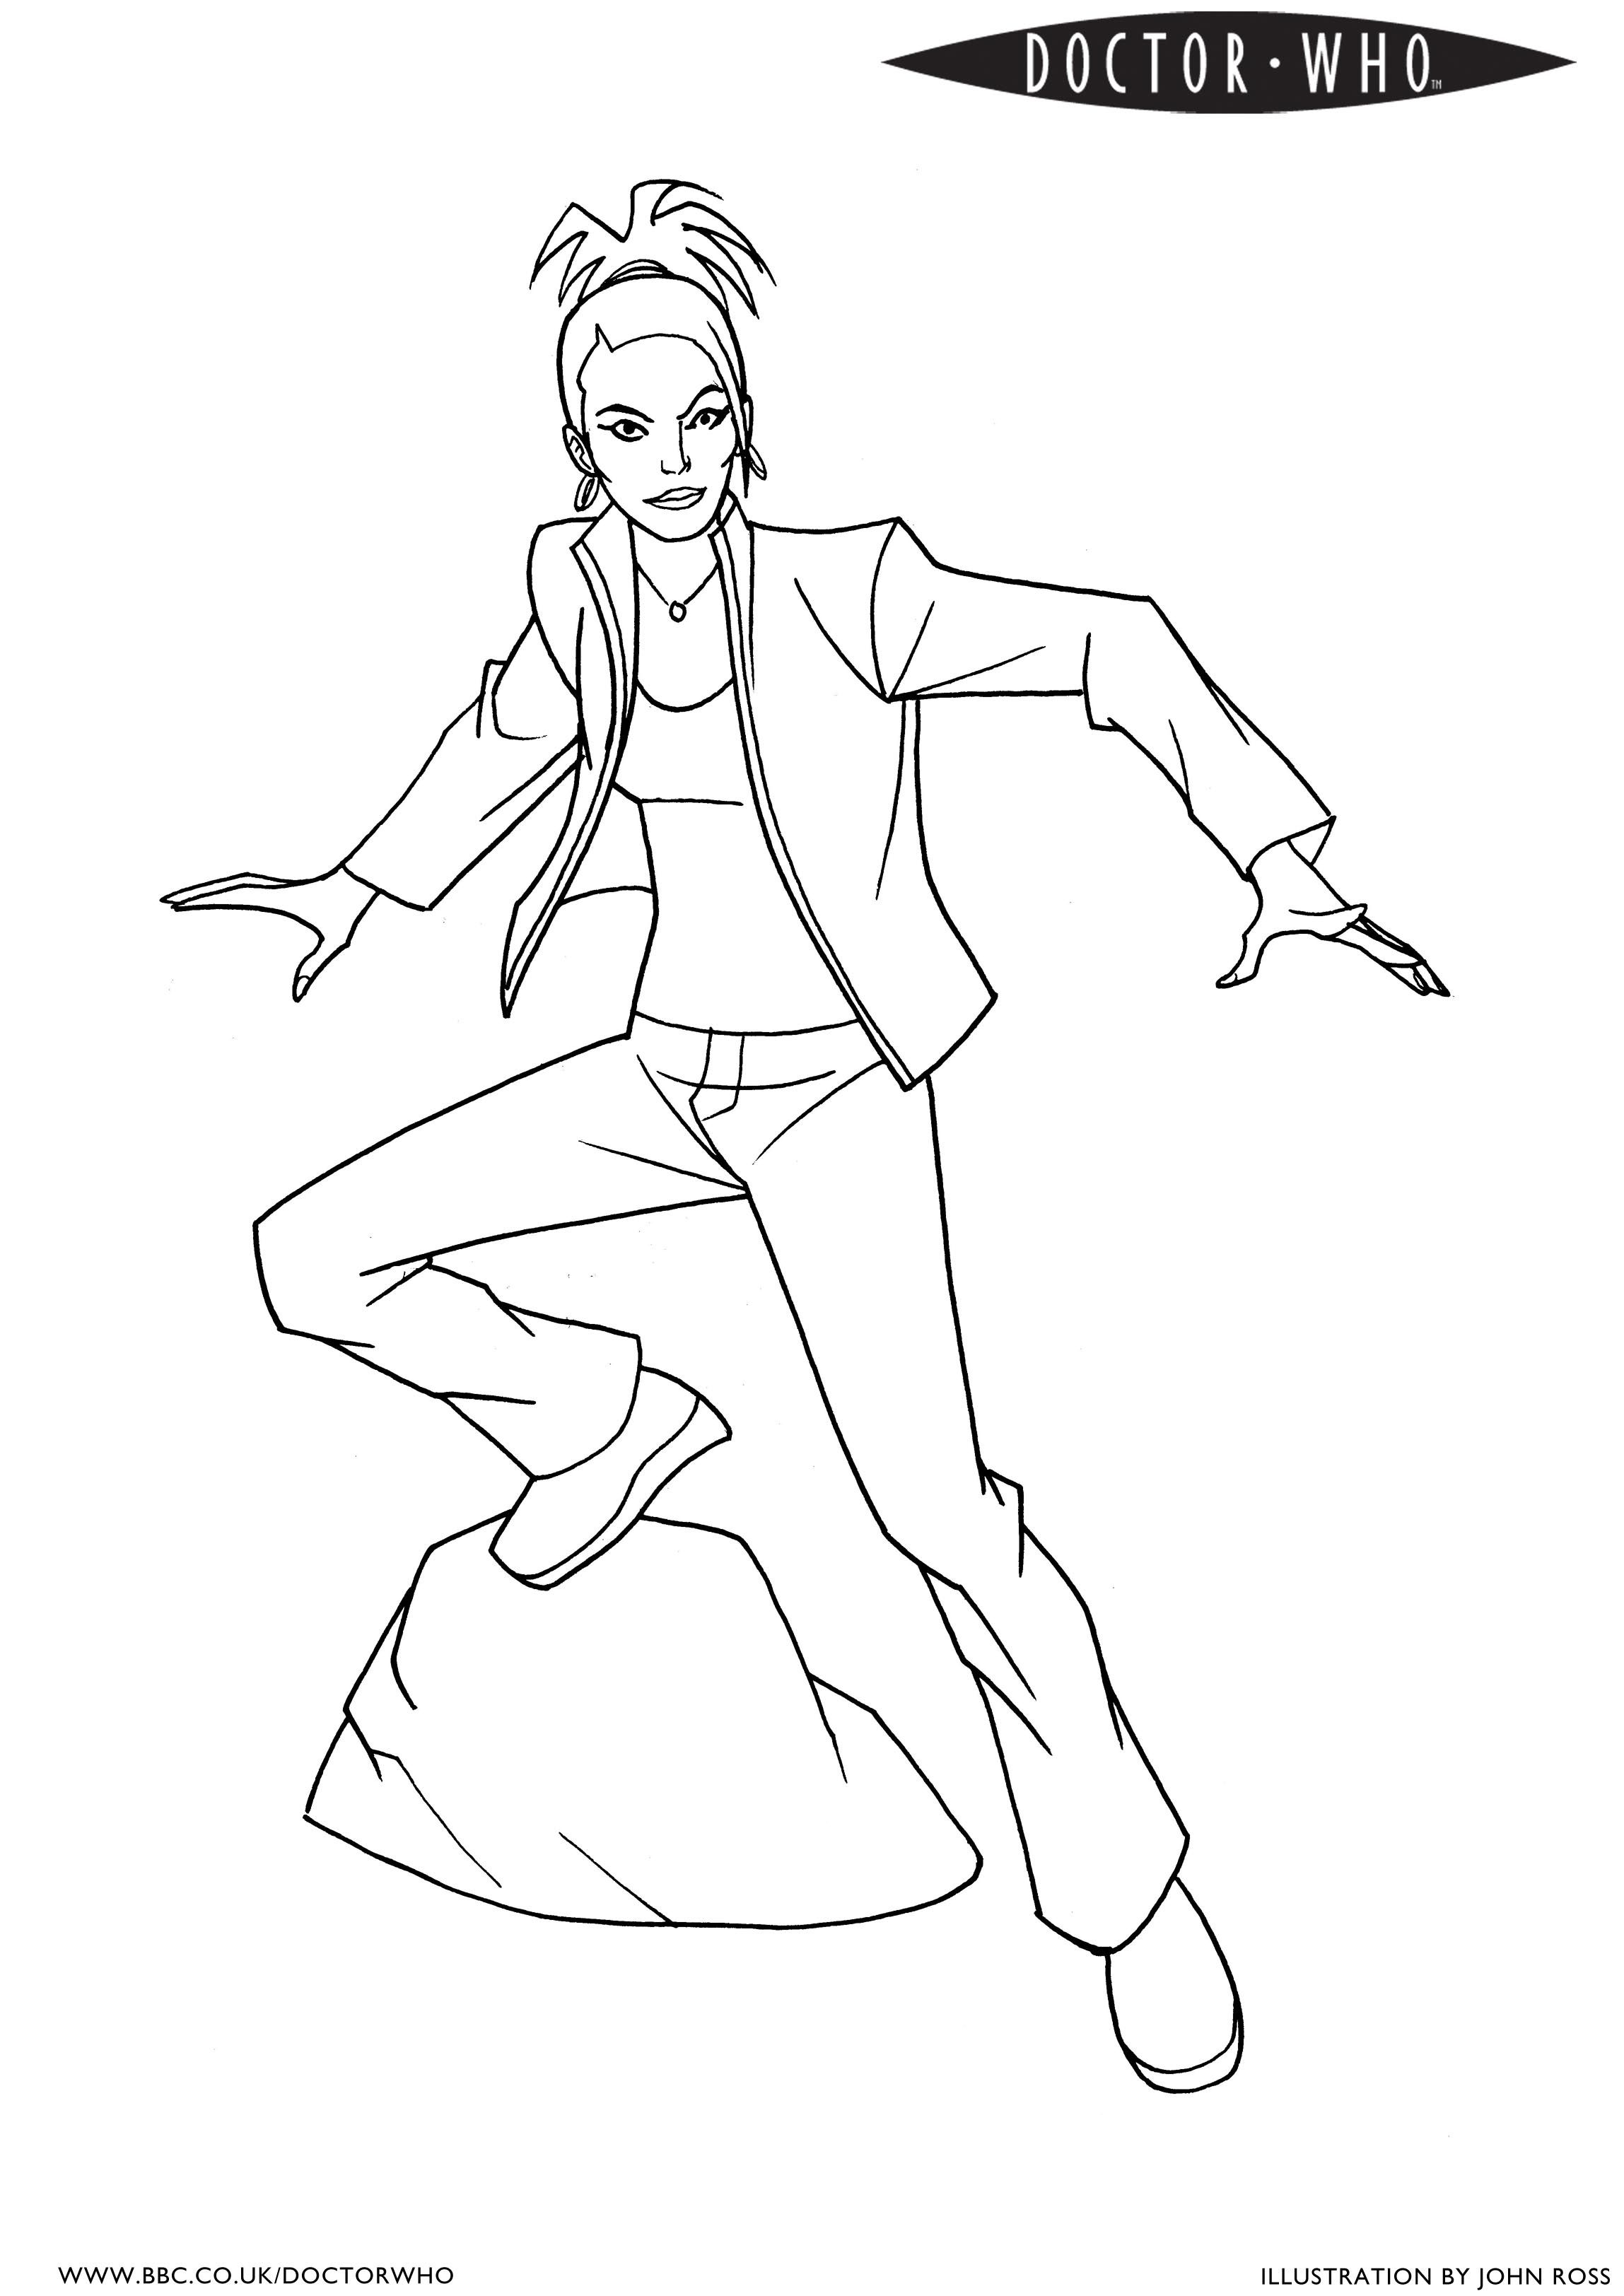 name doctor who coloring pages resolution image Coloriage DOCTOR